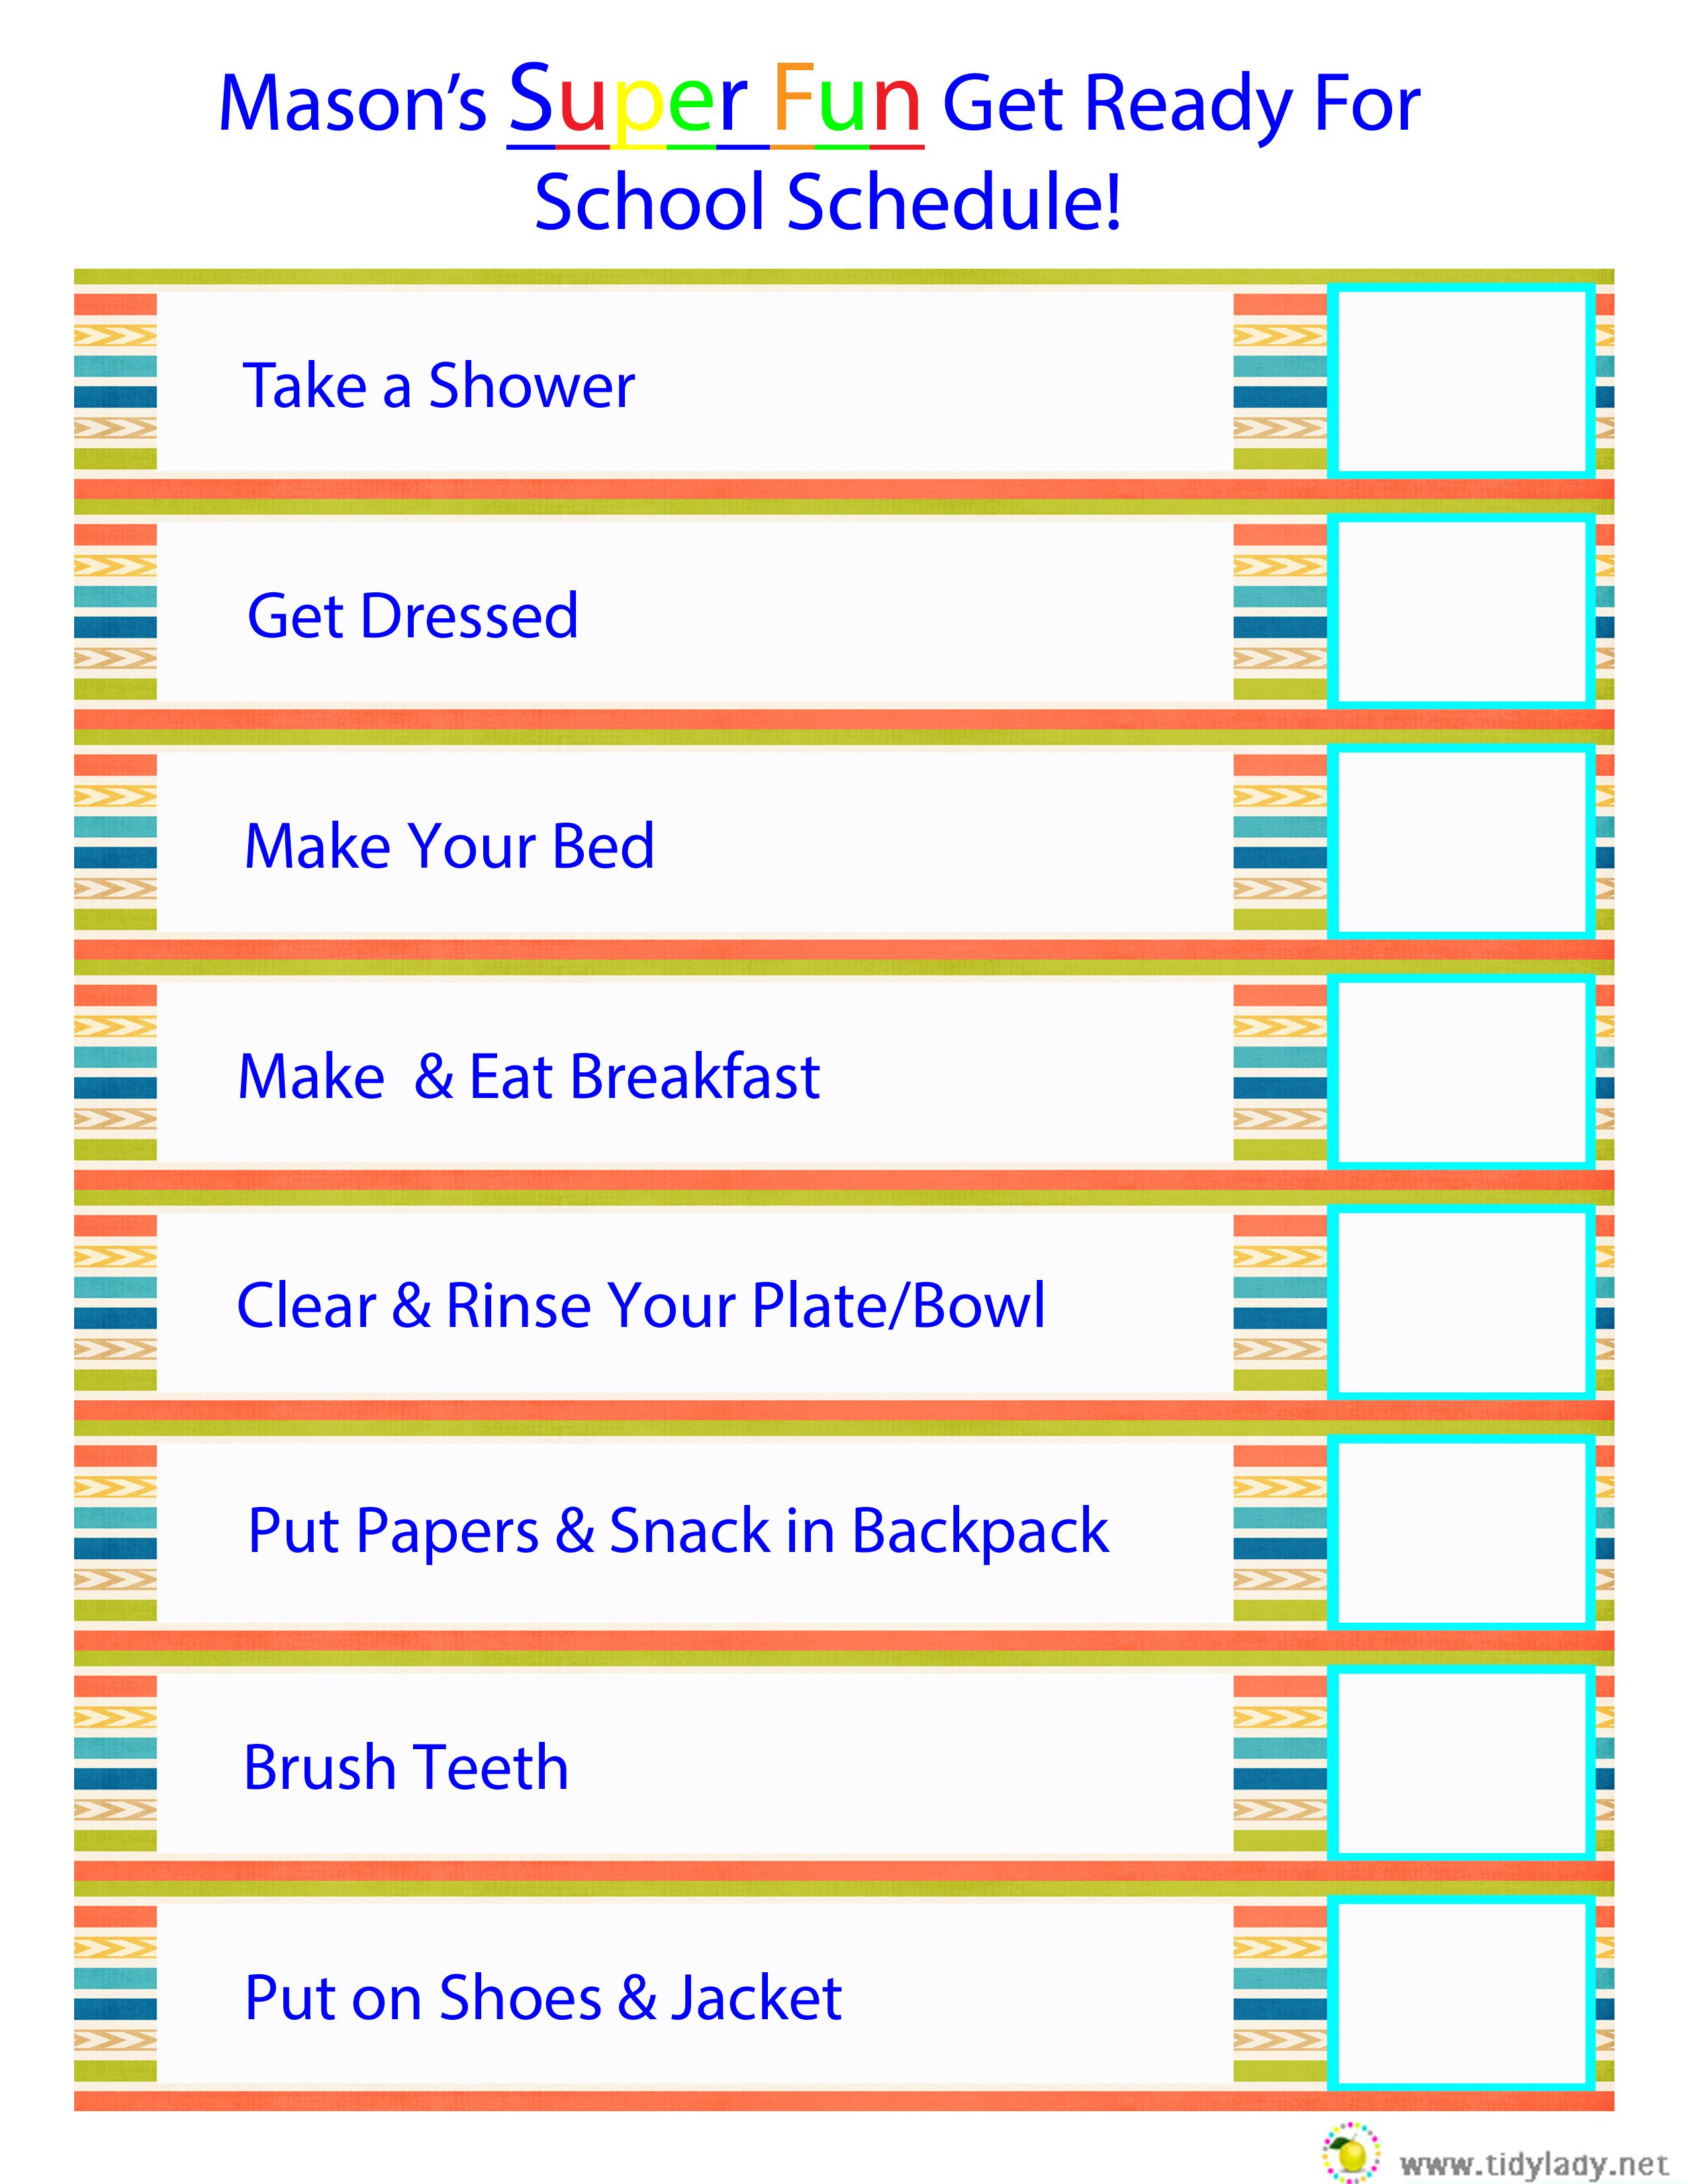 Get Ready For The Day Checklist